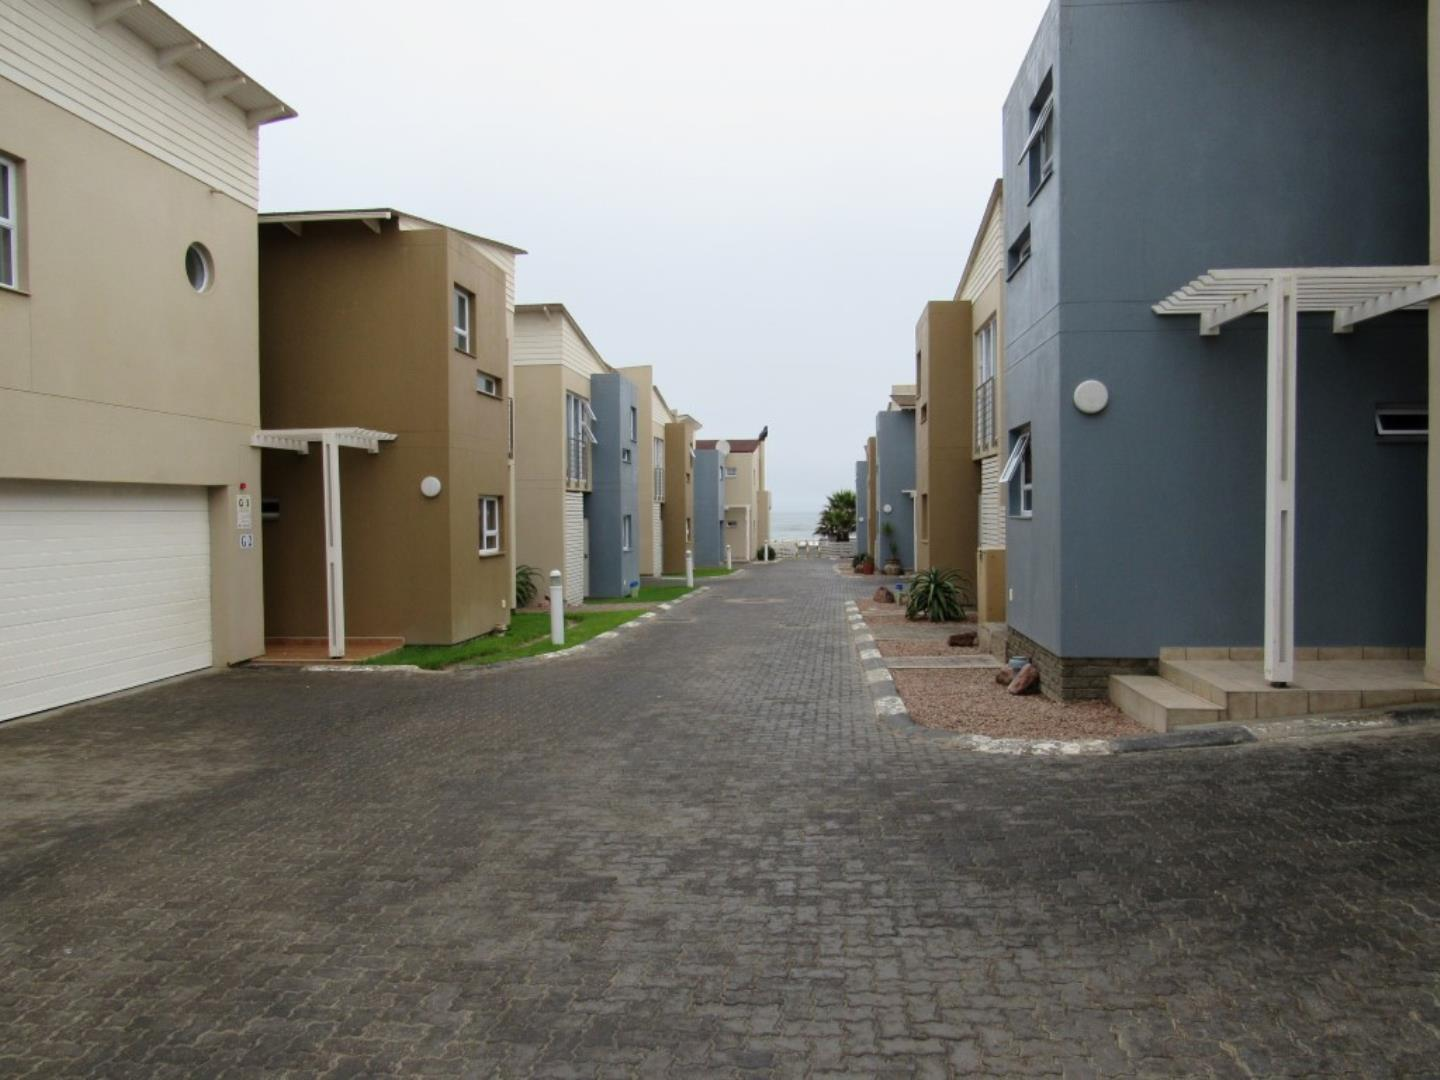 3 Bedroom Townhouse for Sale in Waterfront, Swakopmund - Erongo